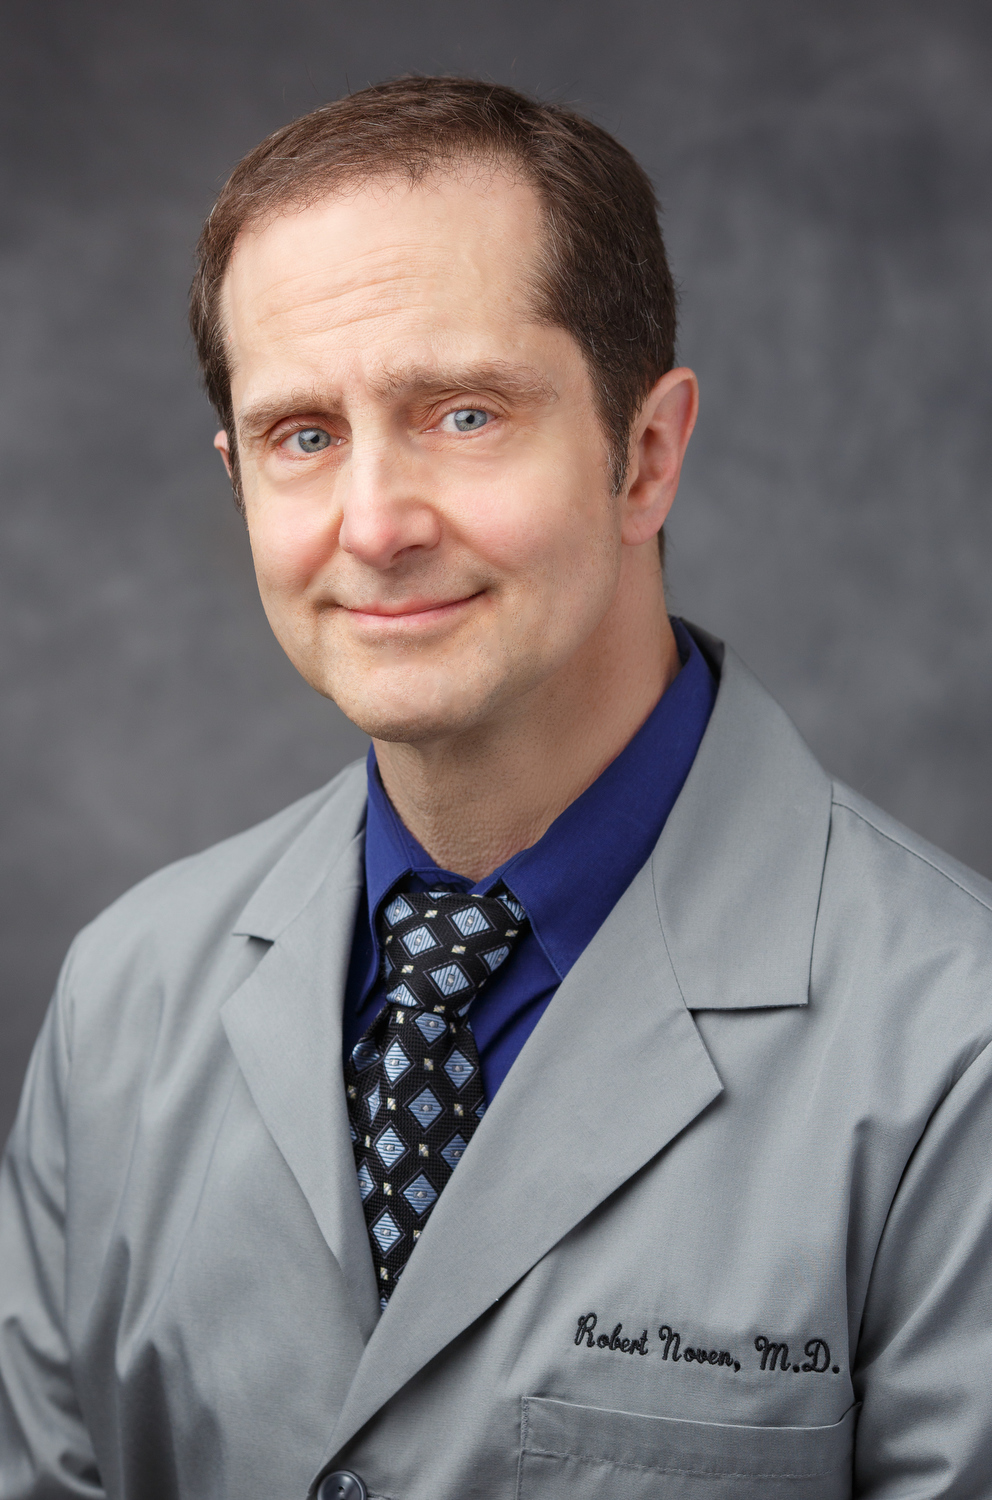 physician-portrait-130206-2771.JPG-crop.JPG